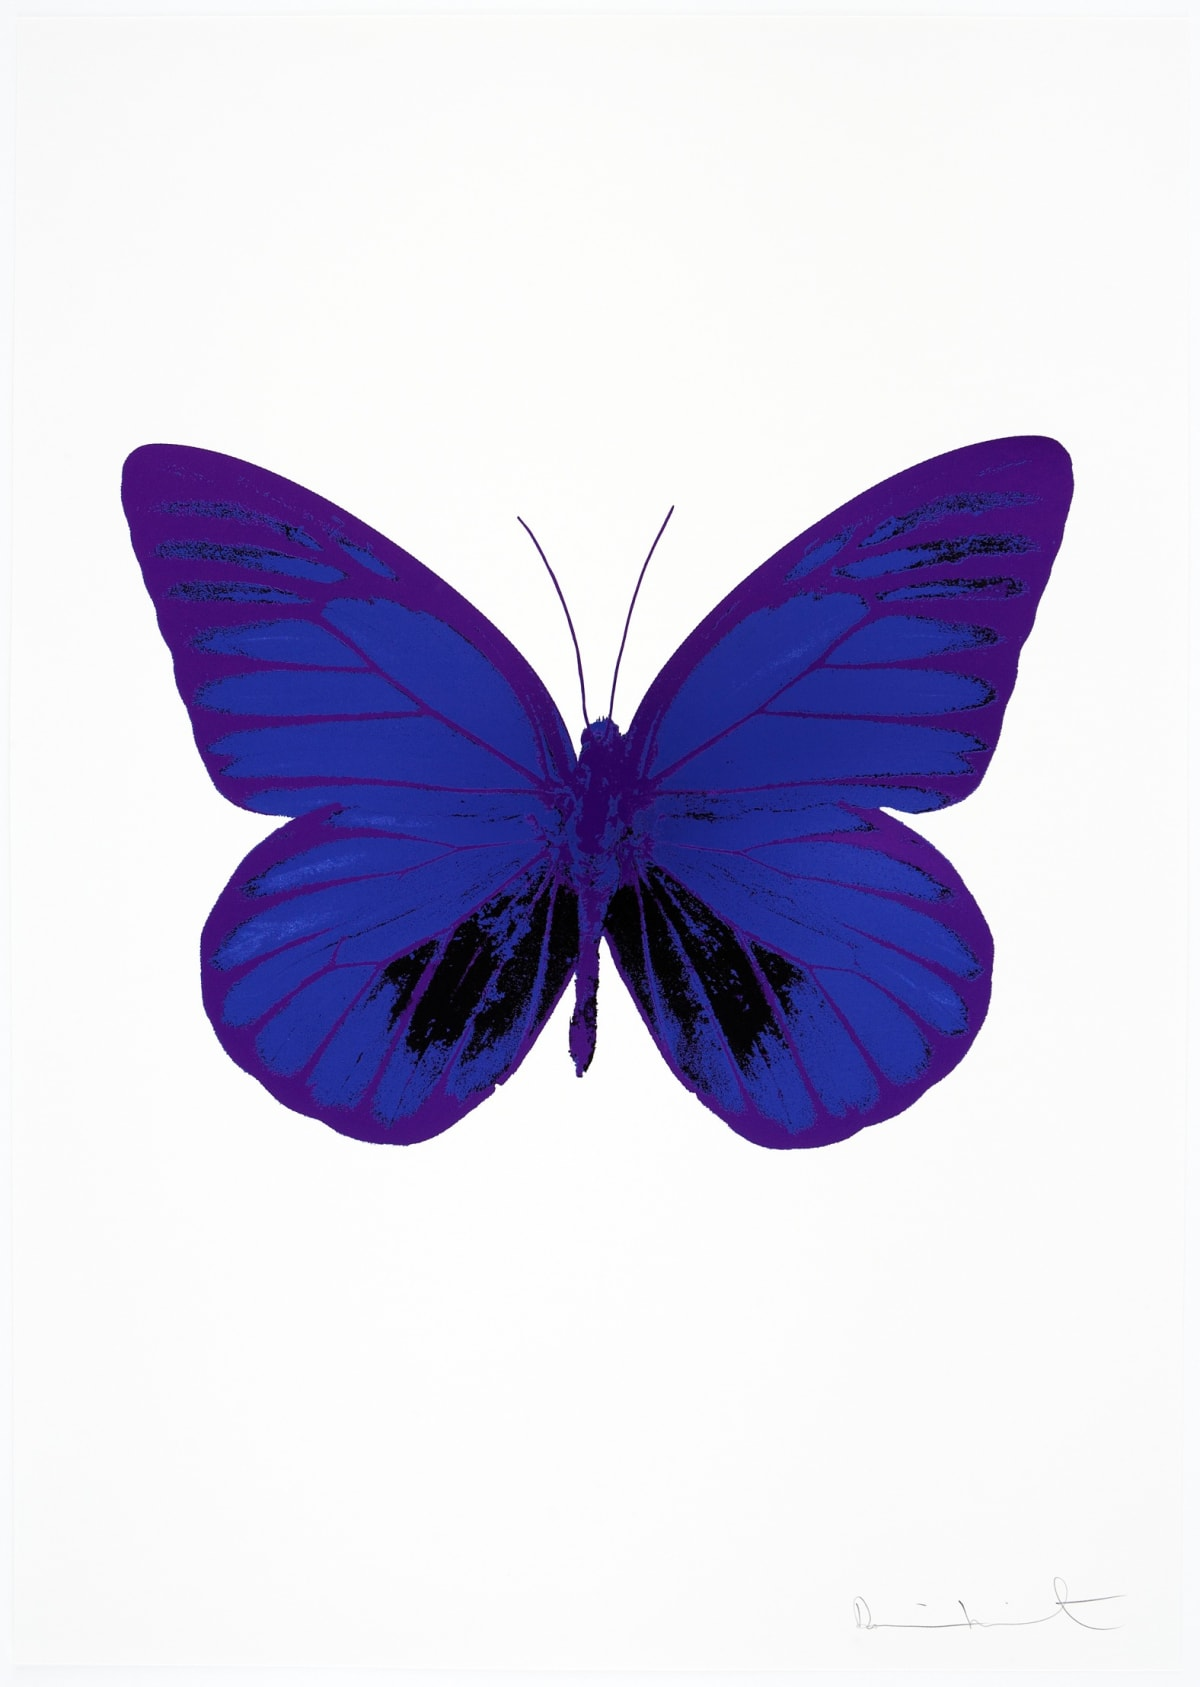 Damien Hirst The Souls I - Westminster Blue/Raven Black/Imperial Purple, 2010 3 colour foil block on 300gsm Arches 88 archival paper. Signed and numbered. Published by Paul Stolper and Other Criteria 72 x 51cm OC7756 / 659-19 Edition of 15